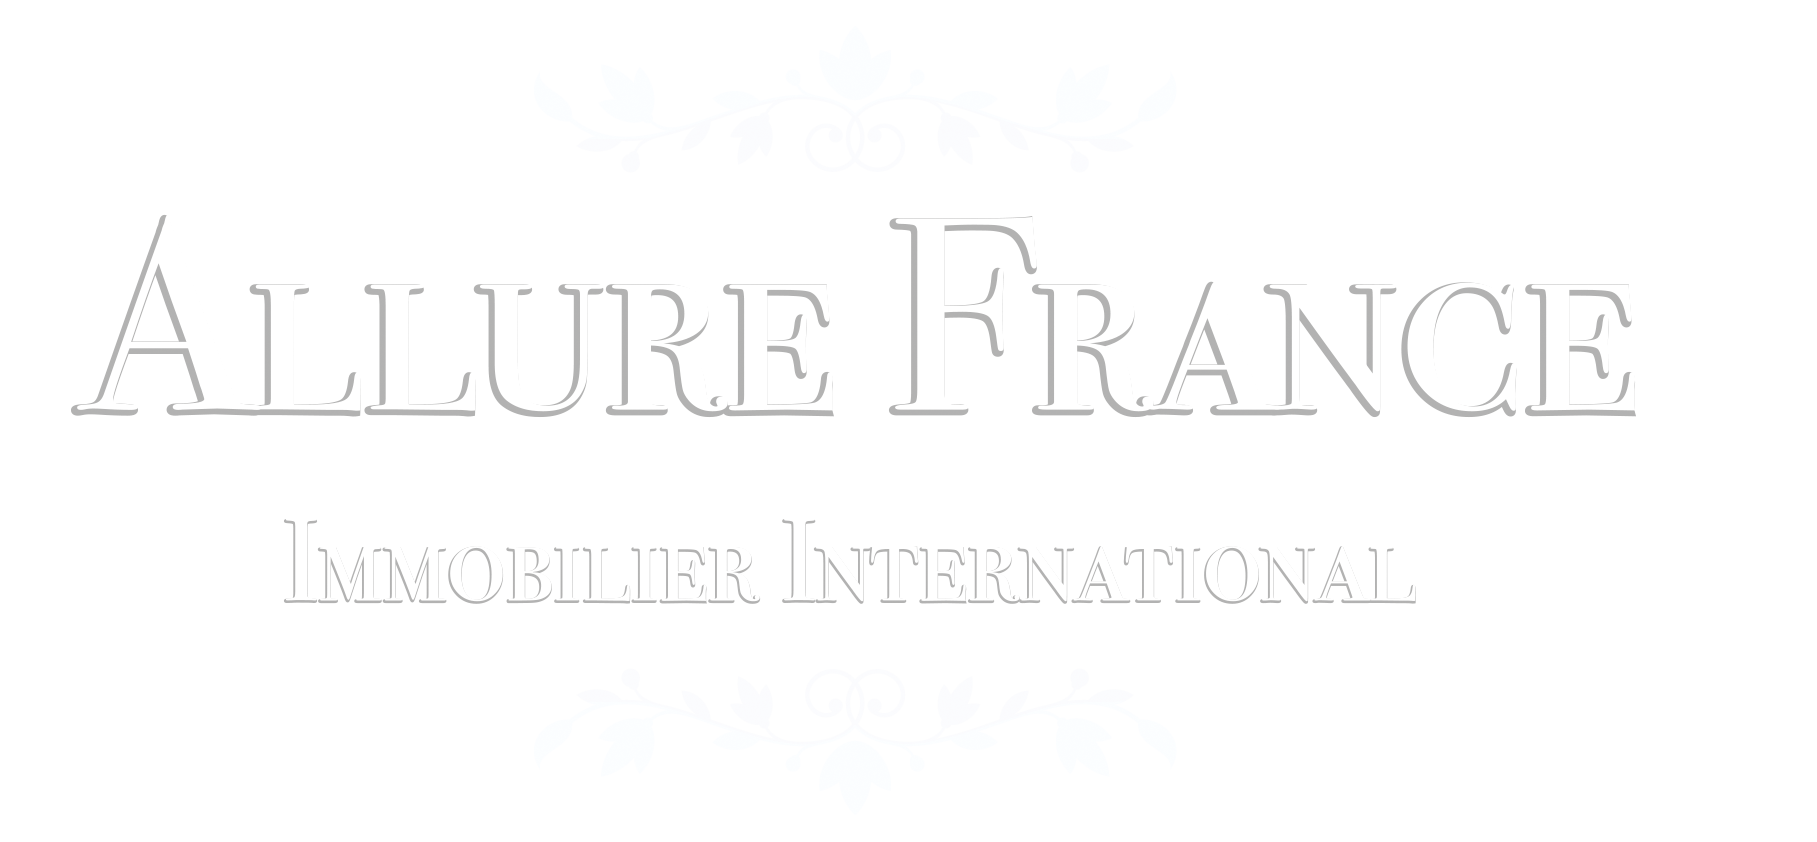 Immobilier sud france allure france